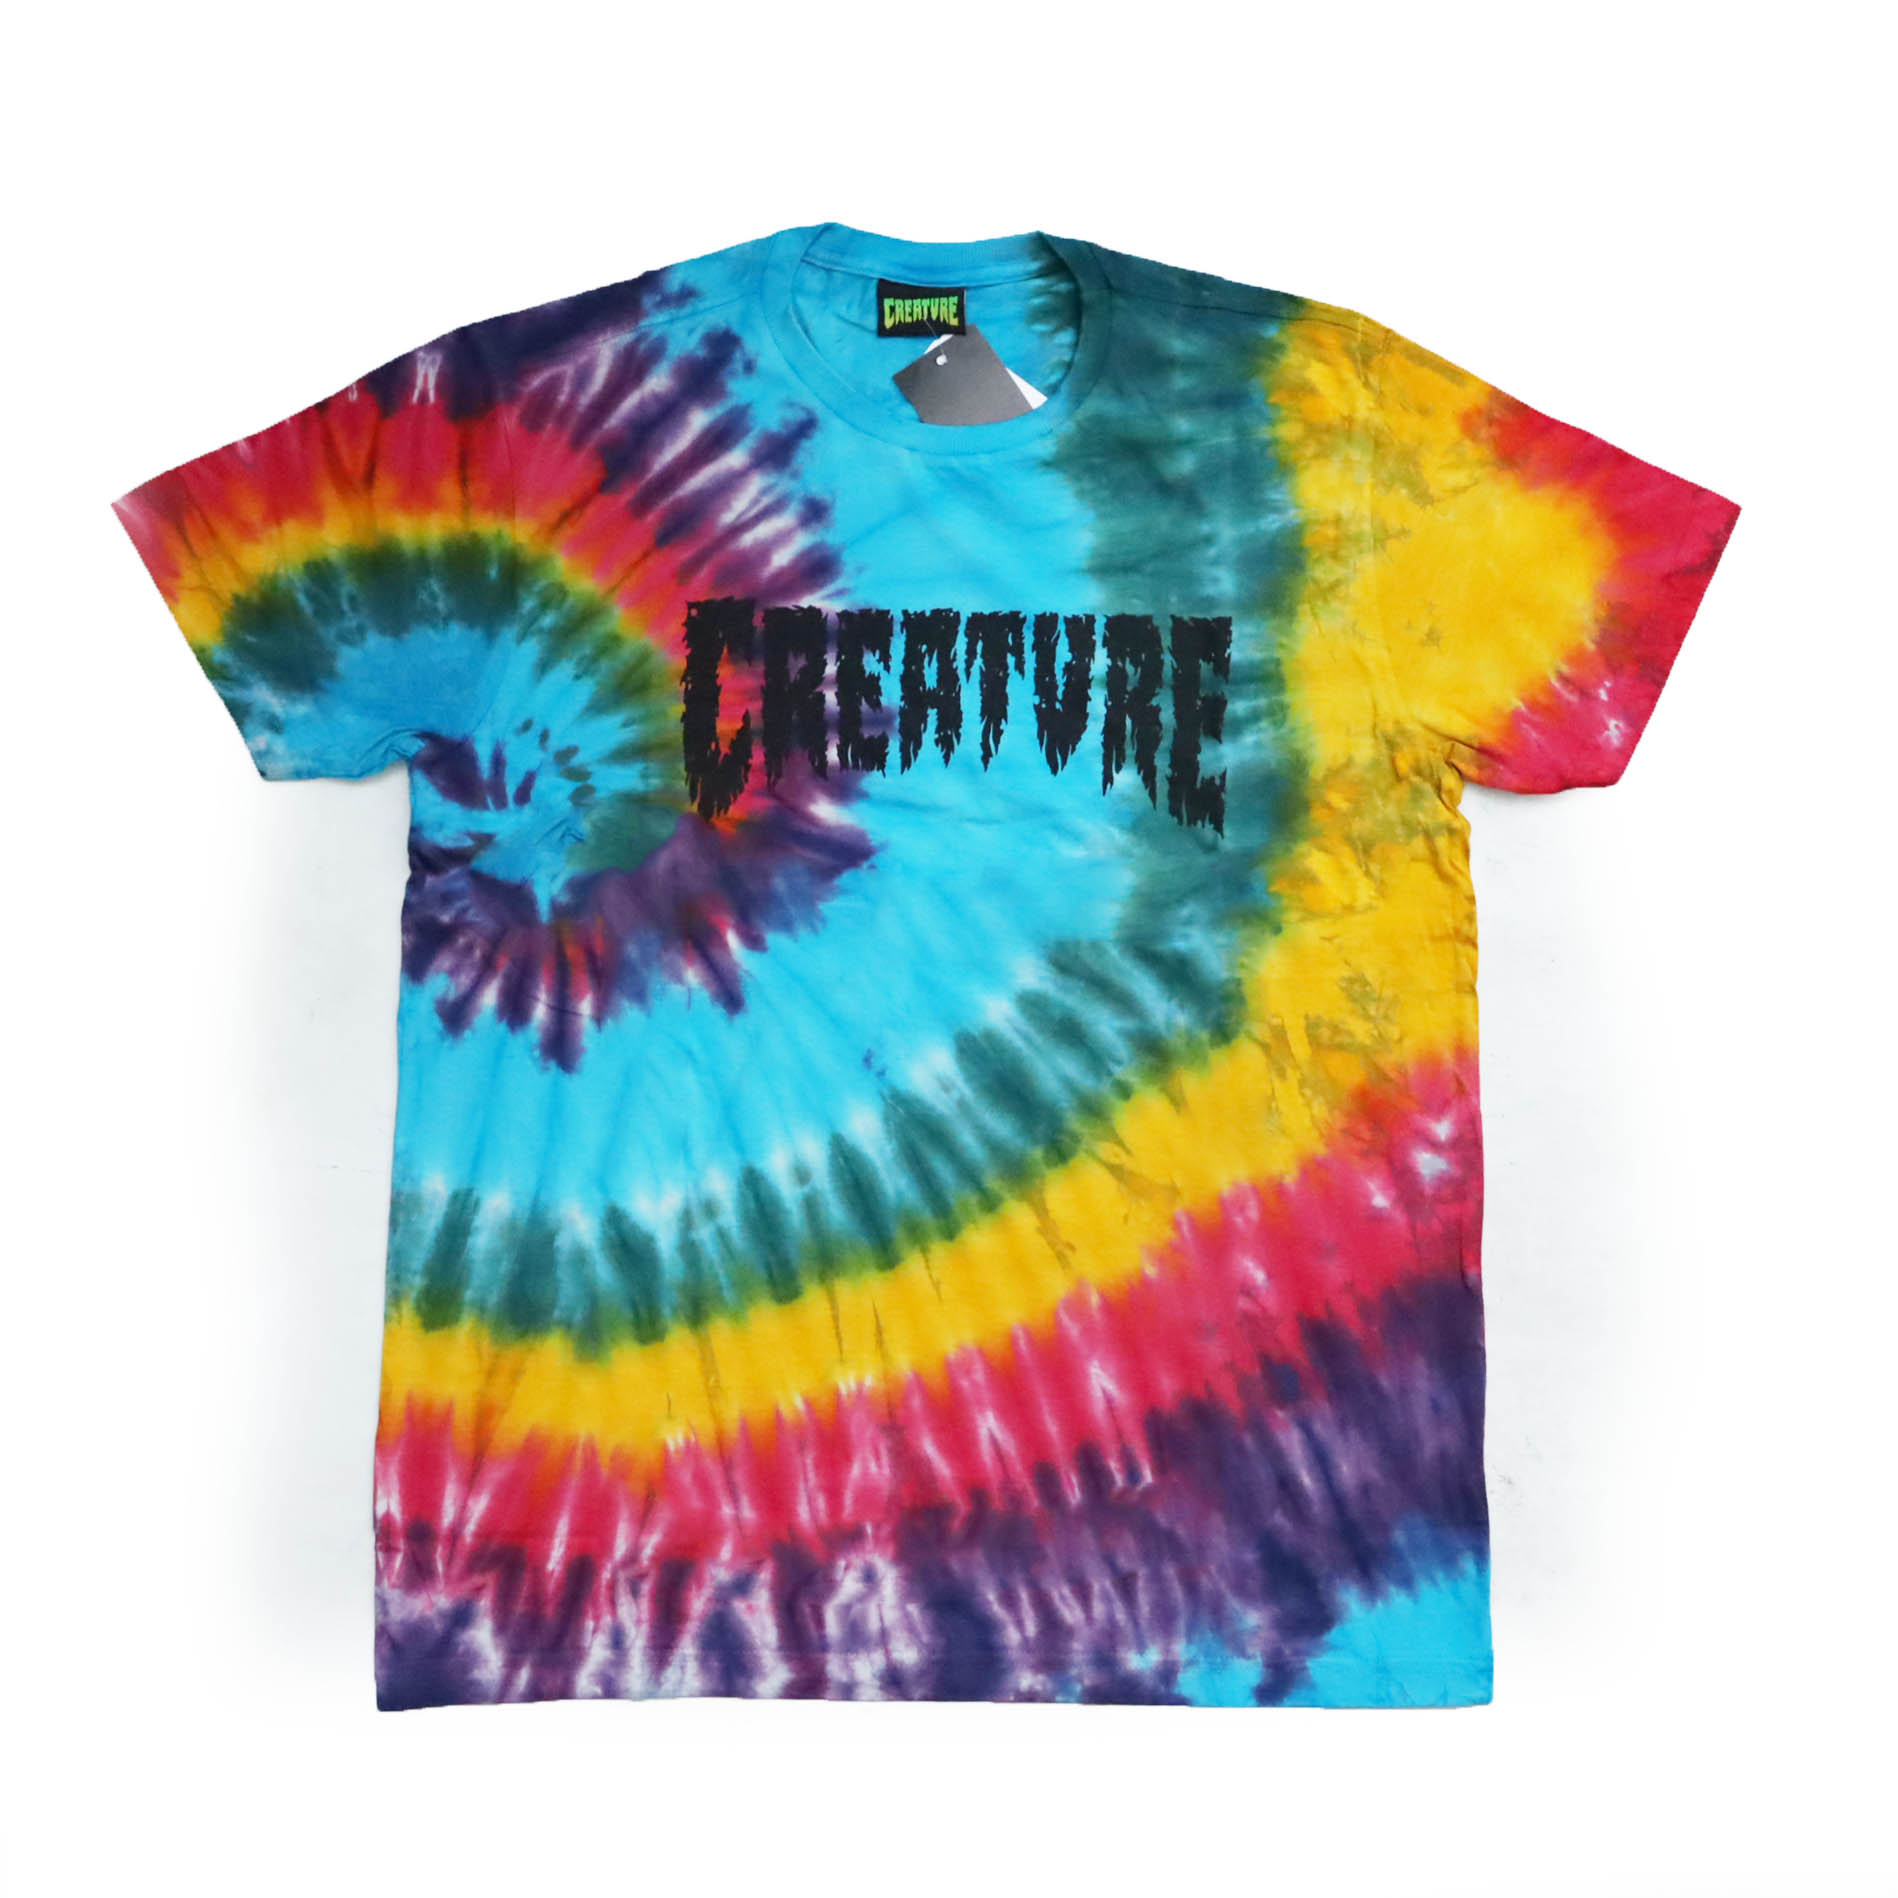 Camiseta Creature Shredded - Tie Dye Colorful